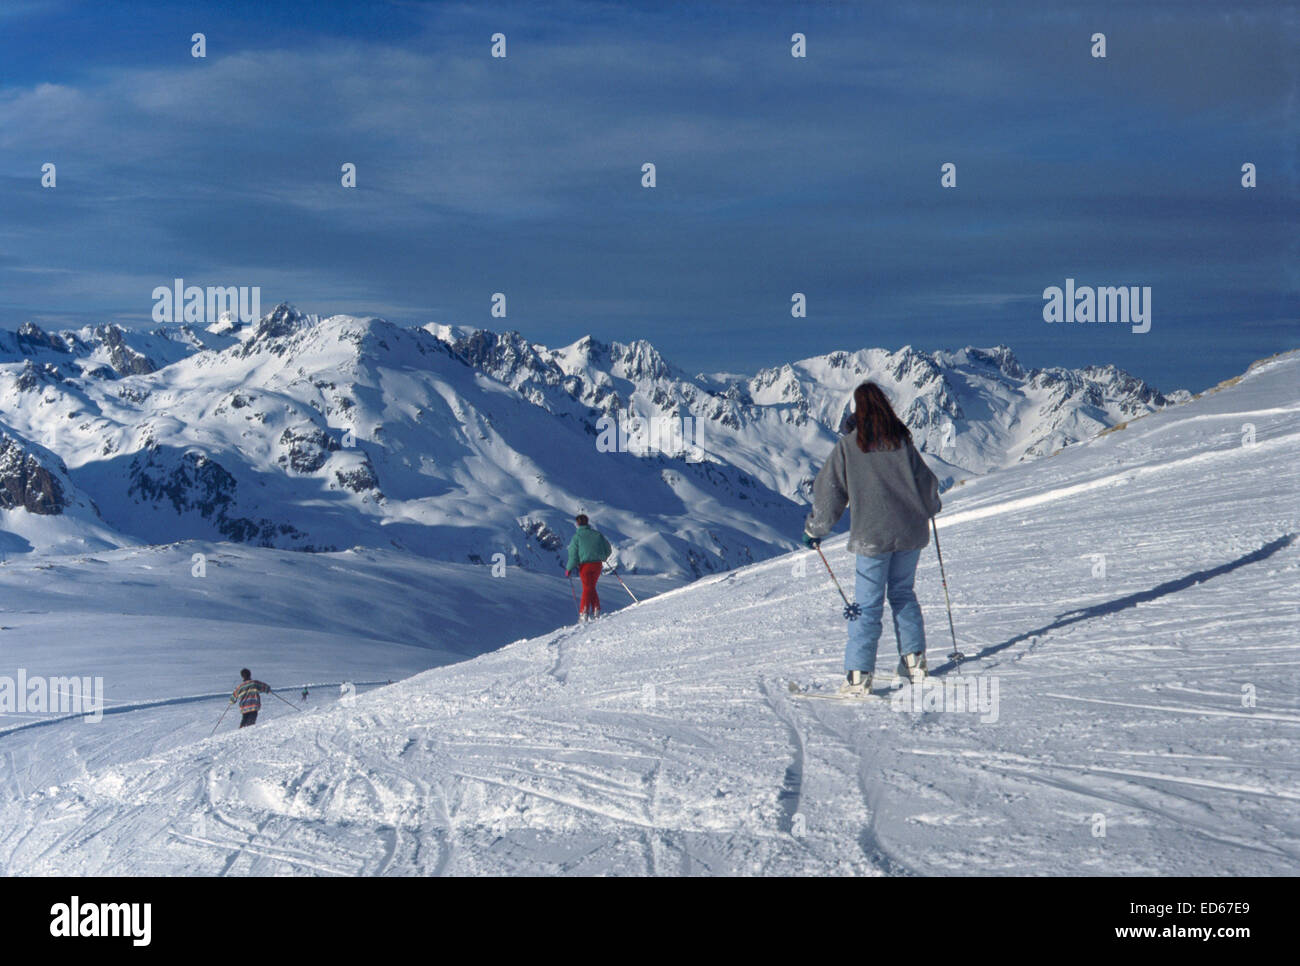 grenoble france skiing stock photos & grenoble france skiing stock